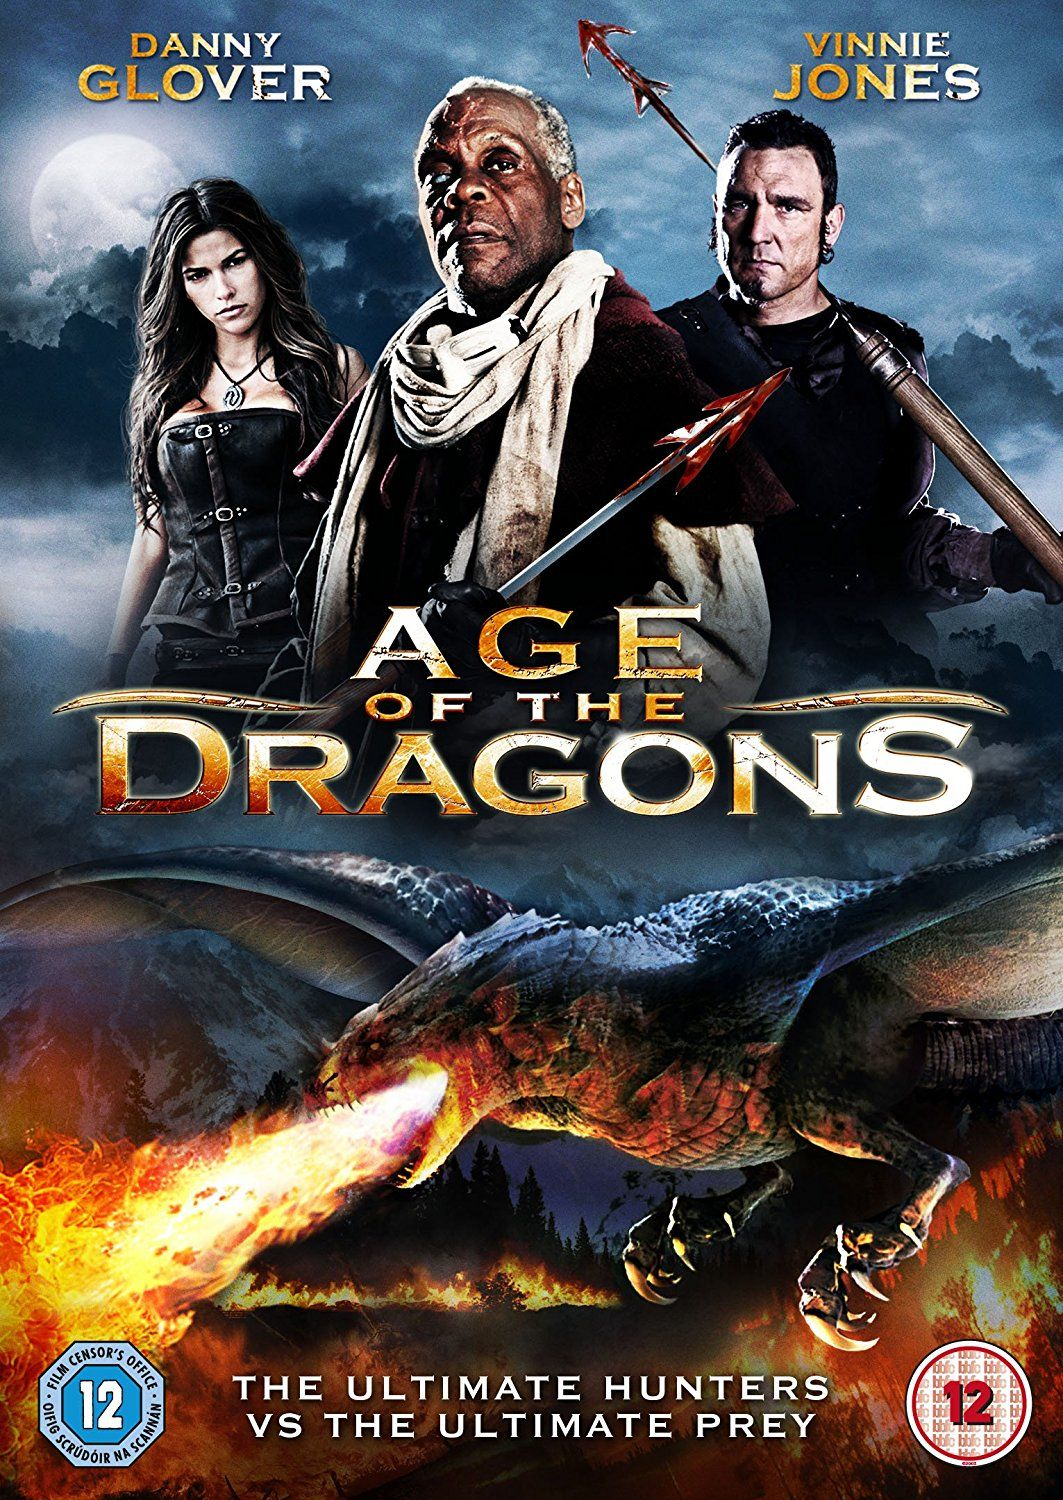 Age of the Dragons [DVD] [2010]: Amazon.co.uk: Danny Glover, Vinnie Jones,  Corey Sevier, Ryan Little